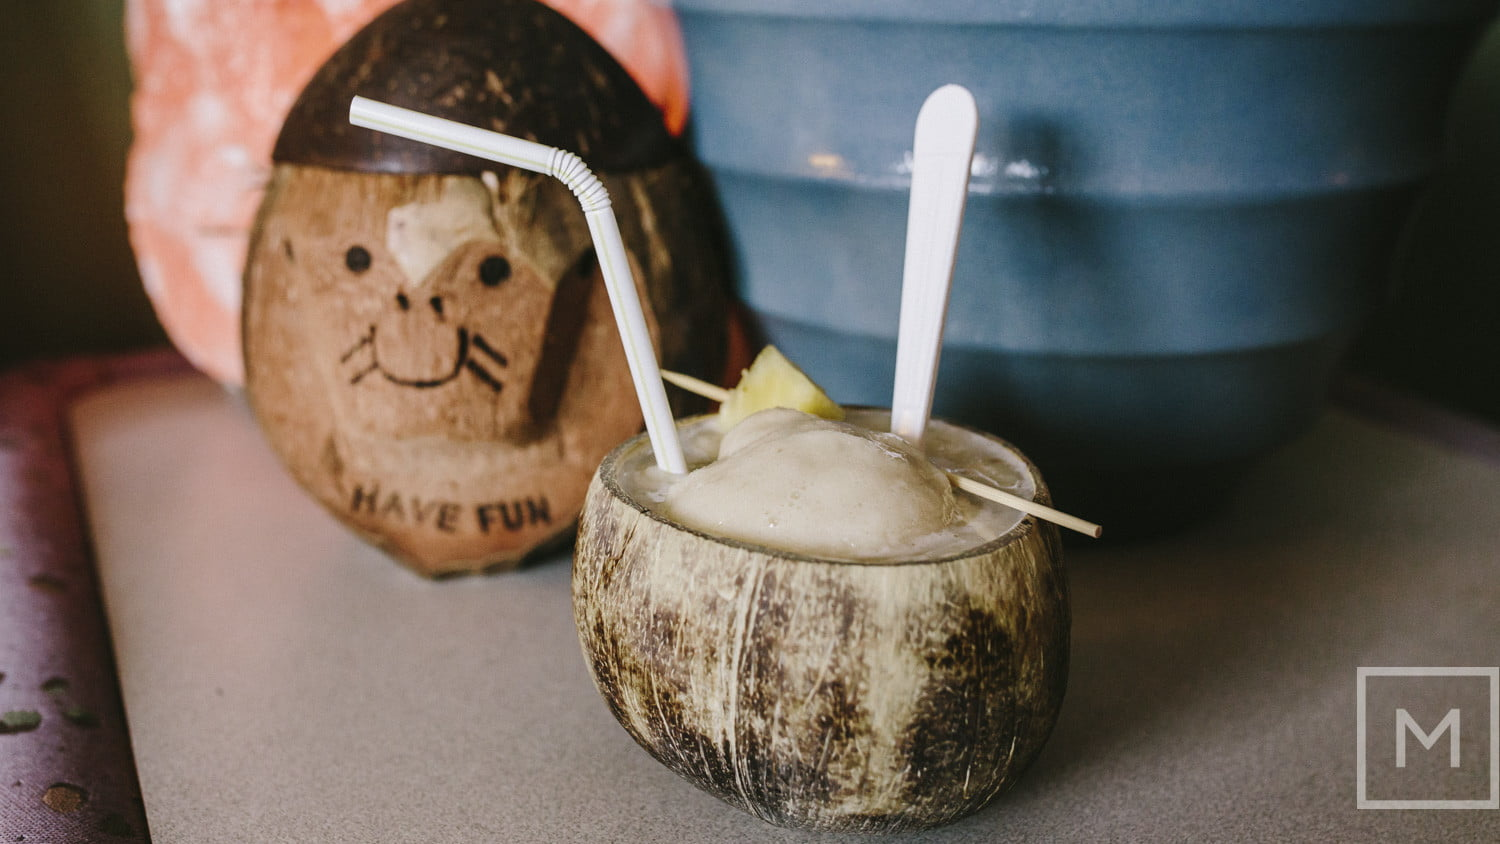 Piquant What Is Kava Tea Effects Konnection Photos By Amy Ellis What Is Alternative You Need To Know About Manual Kalm Kava Concentrate Kava Free Shipping Kalm houzz 01 Kalm With Kava